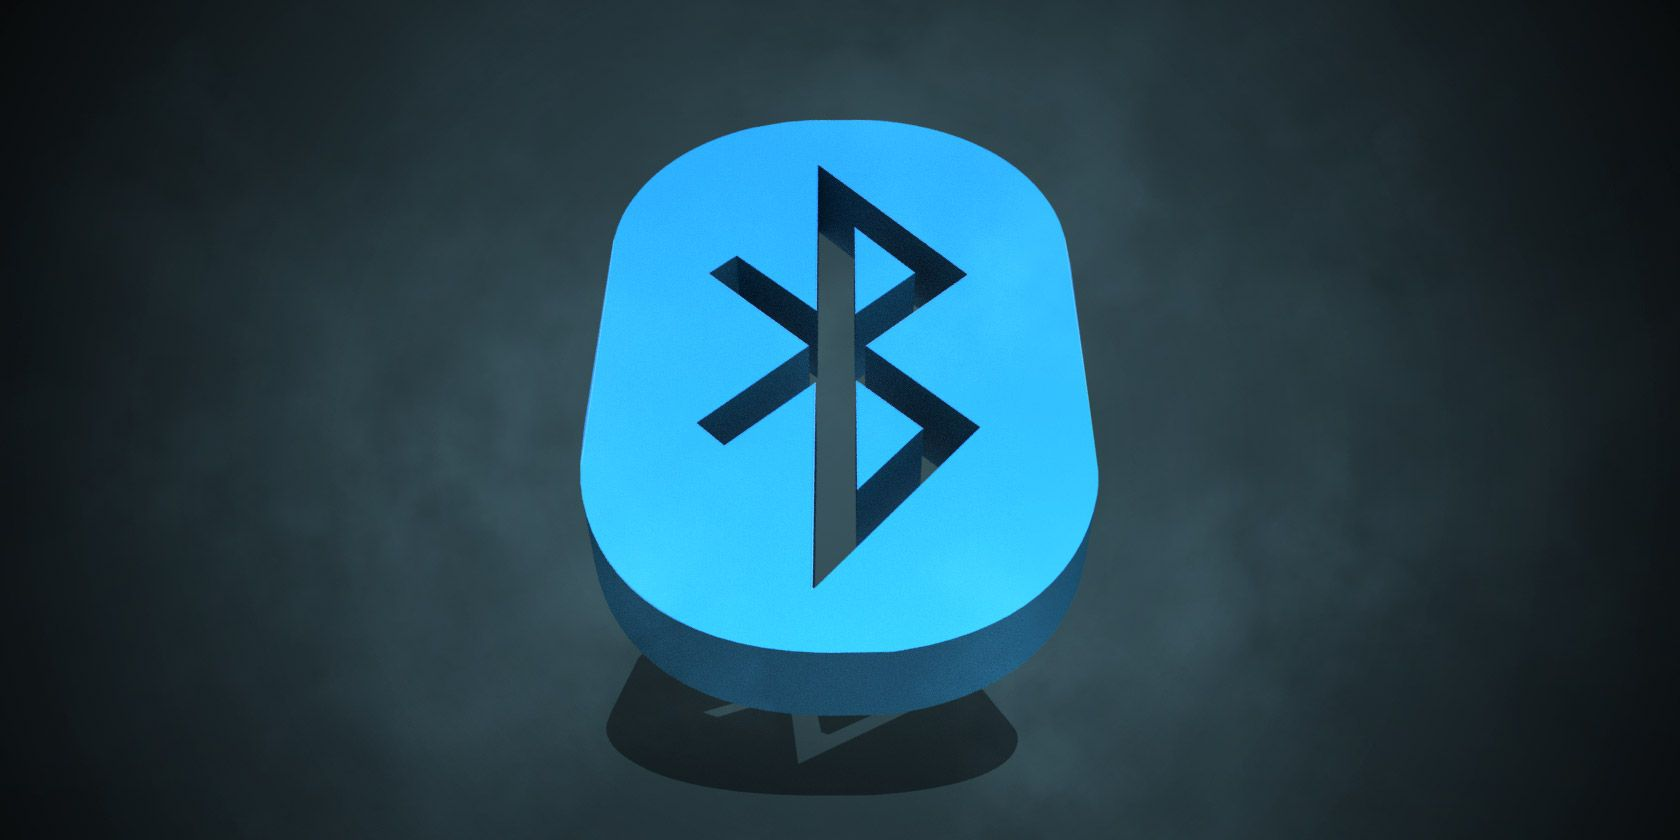 How to Set Up Bluetooth for a Windows 7 PC